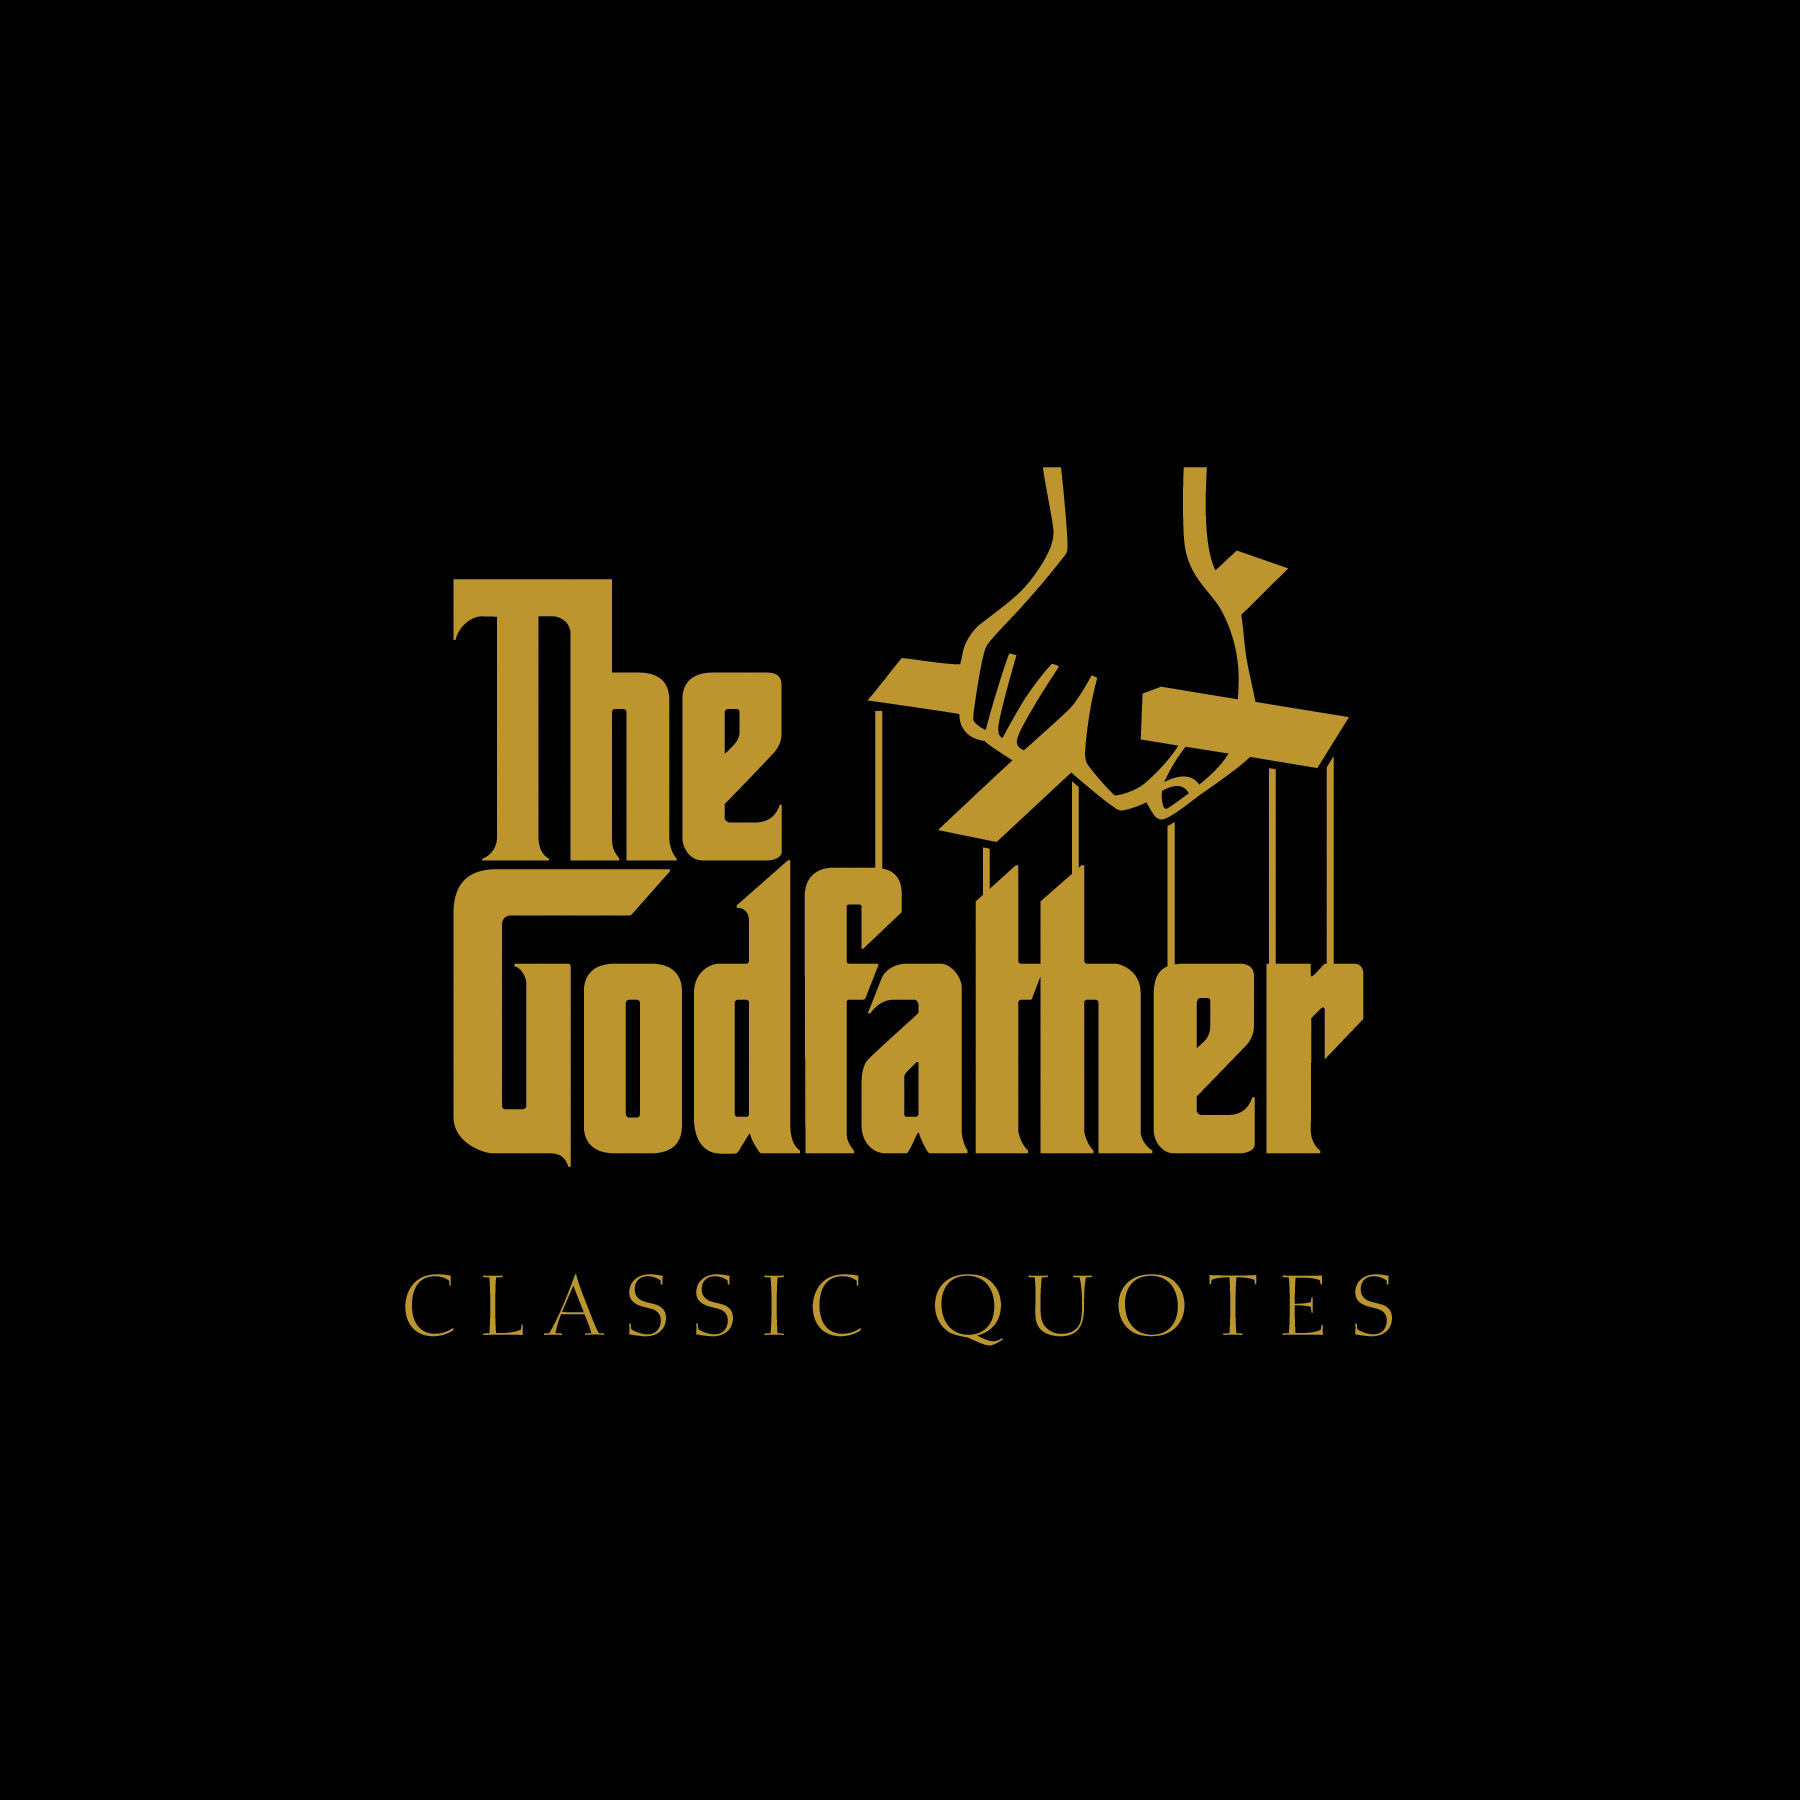 Classic Quotes The Godfather Classic Quotes  Bookcarlo De Vito  Official